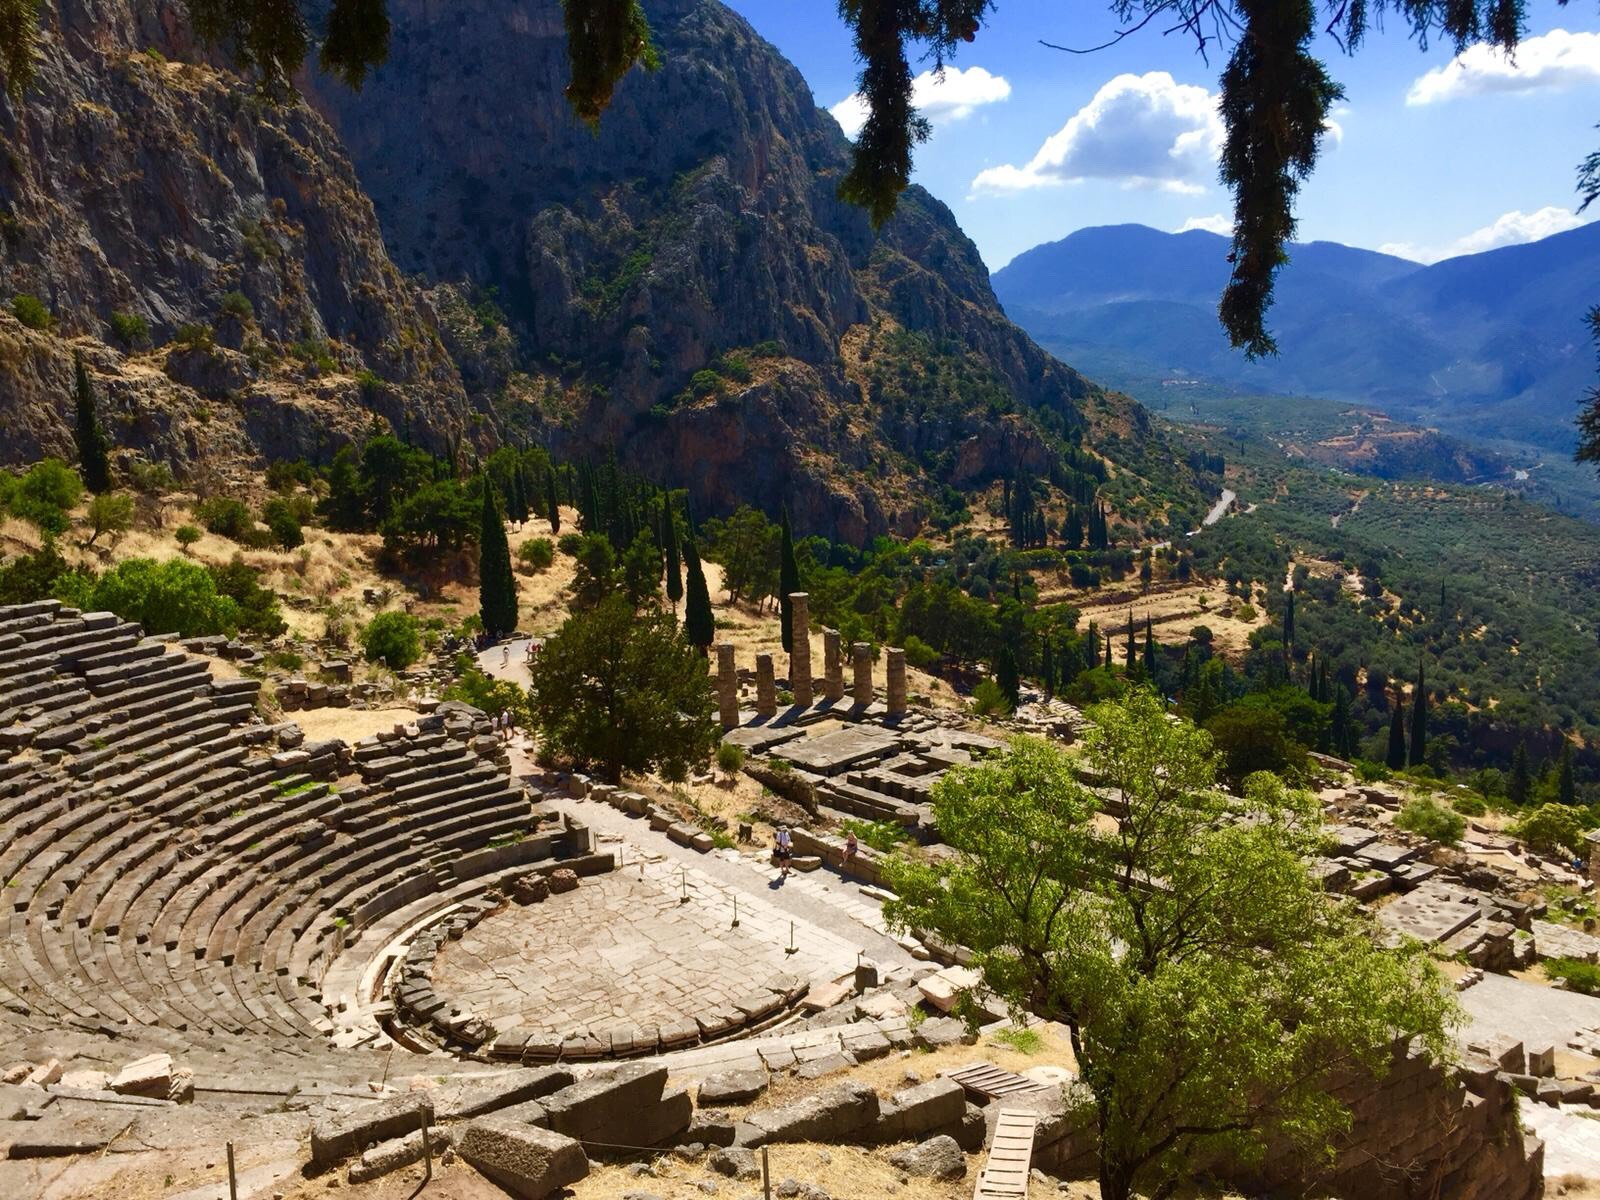 the modern-day site where the oracle of delphi would have spoken many hallucinogenic truths. - Courtesy of Spomenka Krizmanic